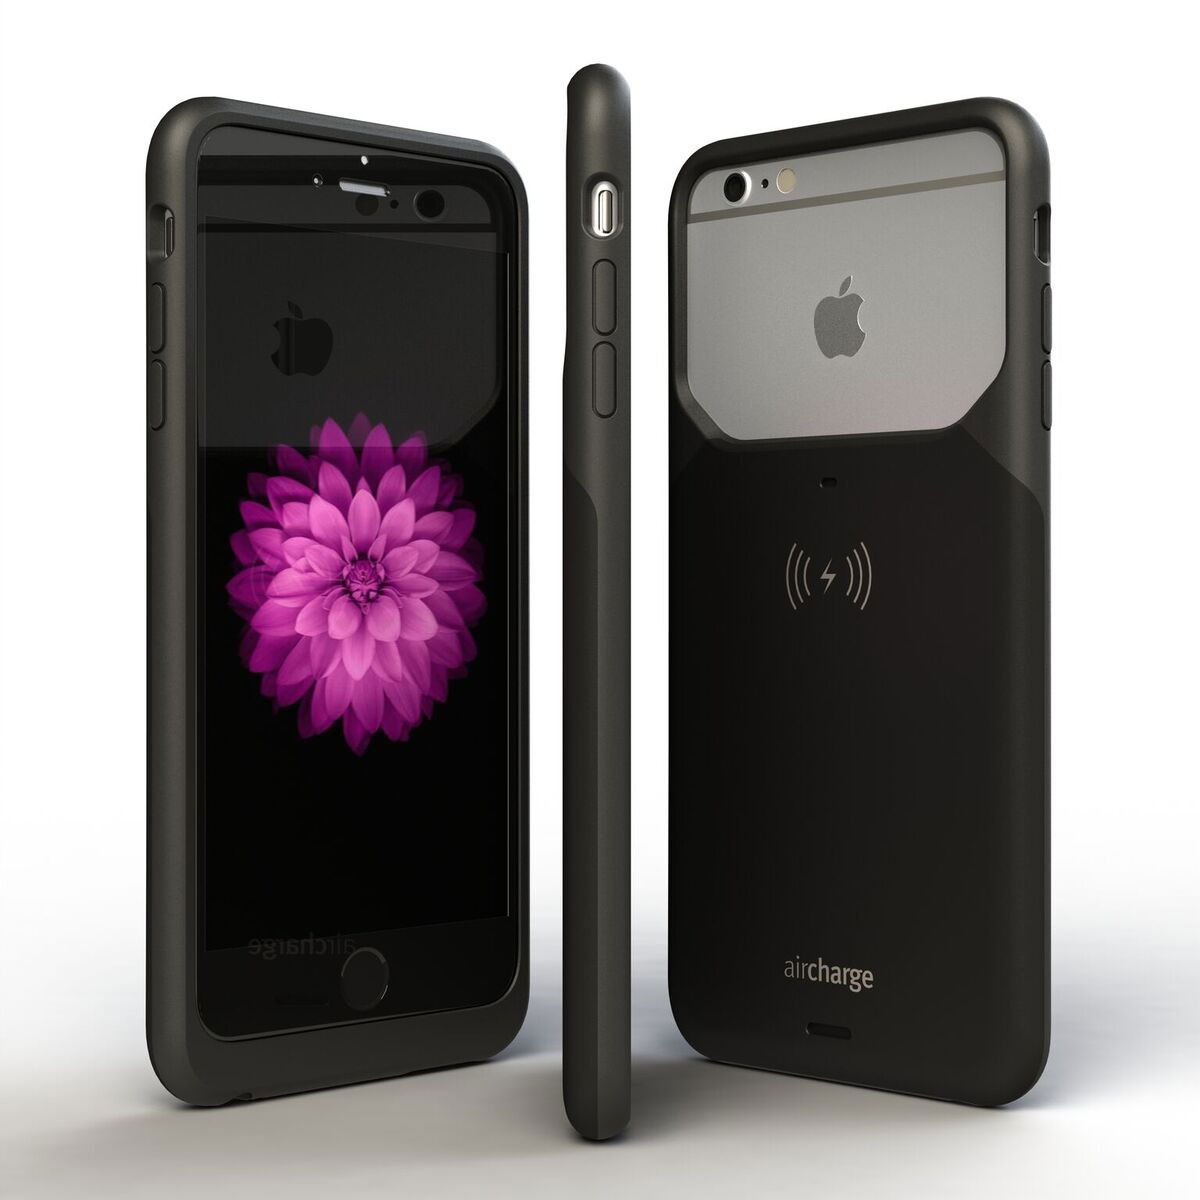 aircharge MFi iPhone 6S Plus / 6 Plus Wireless Charging Case - Black